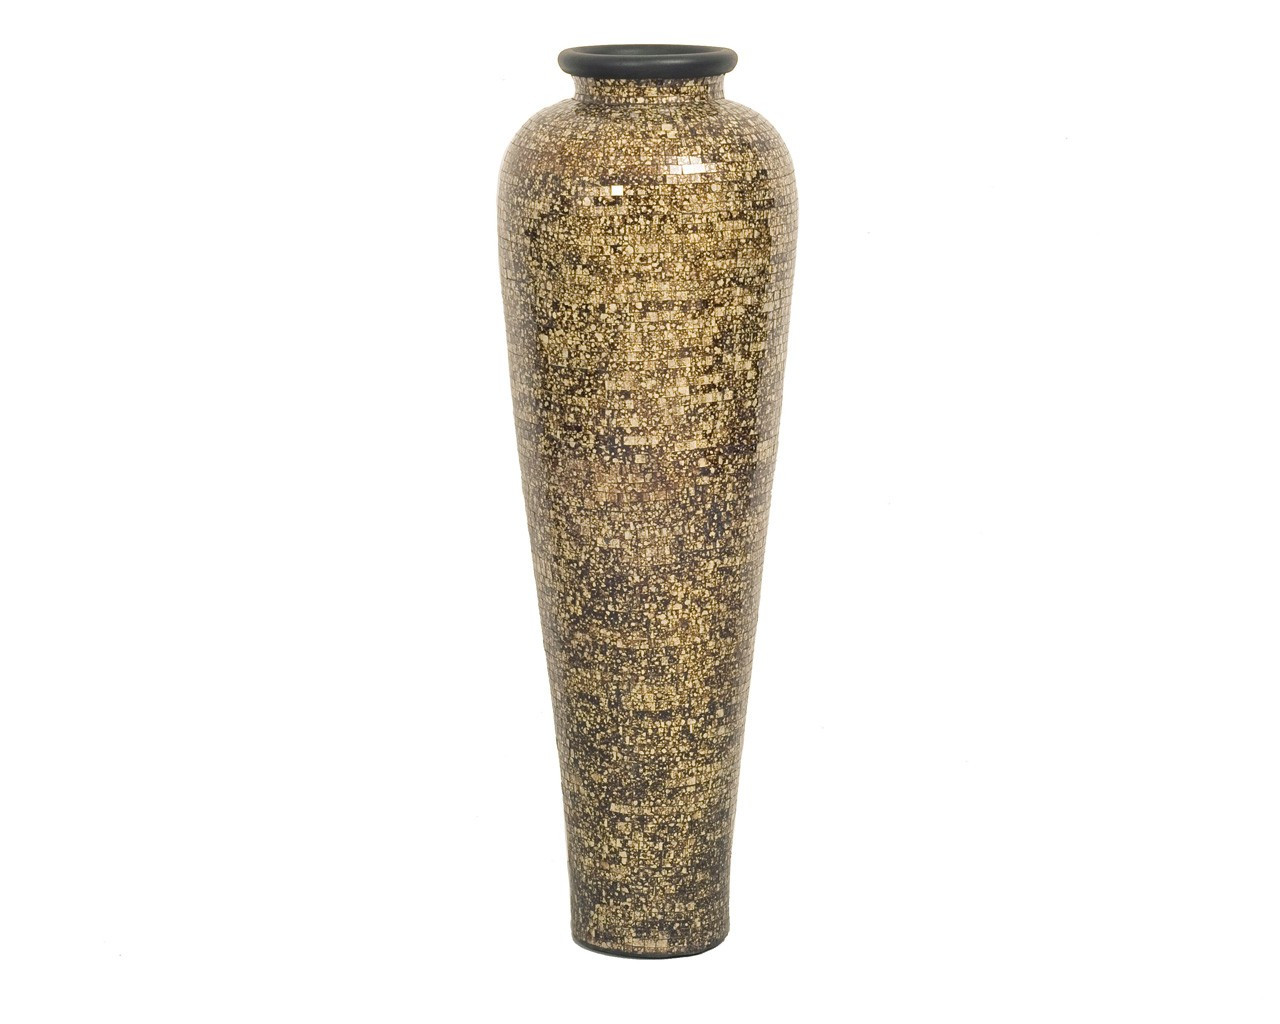 Satsuma Vase Ebay Of Large Gold Vases for the Floor Vase and Cellar Image Avorcor Com Regarding Unusual Design Floor Vase Ideas Featuring Cream Color and